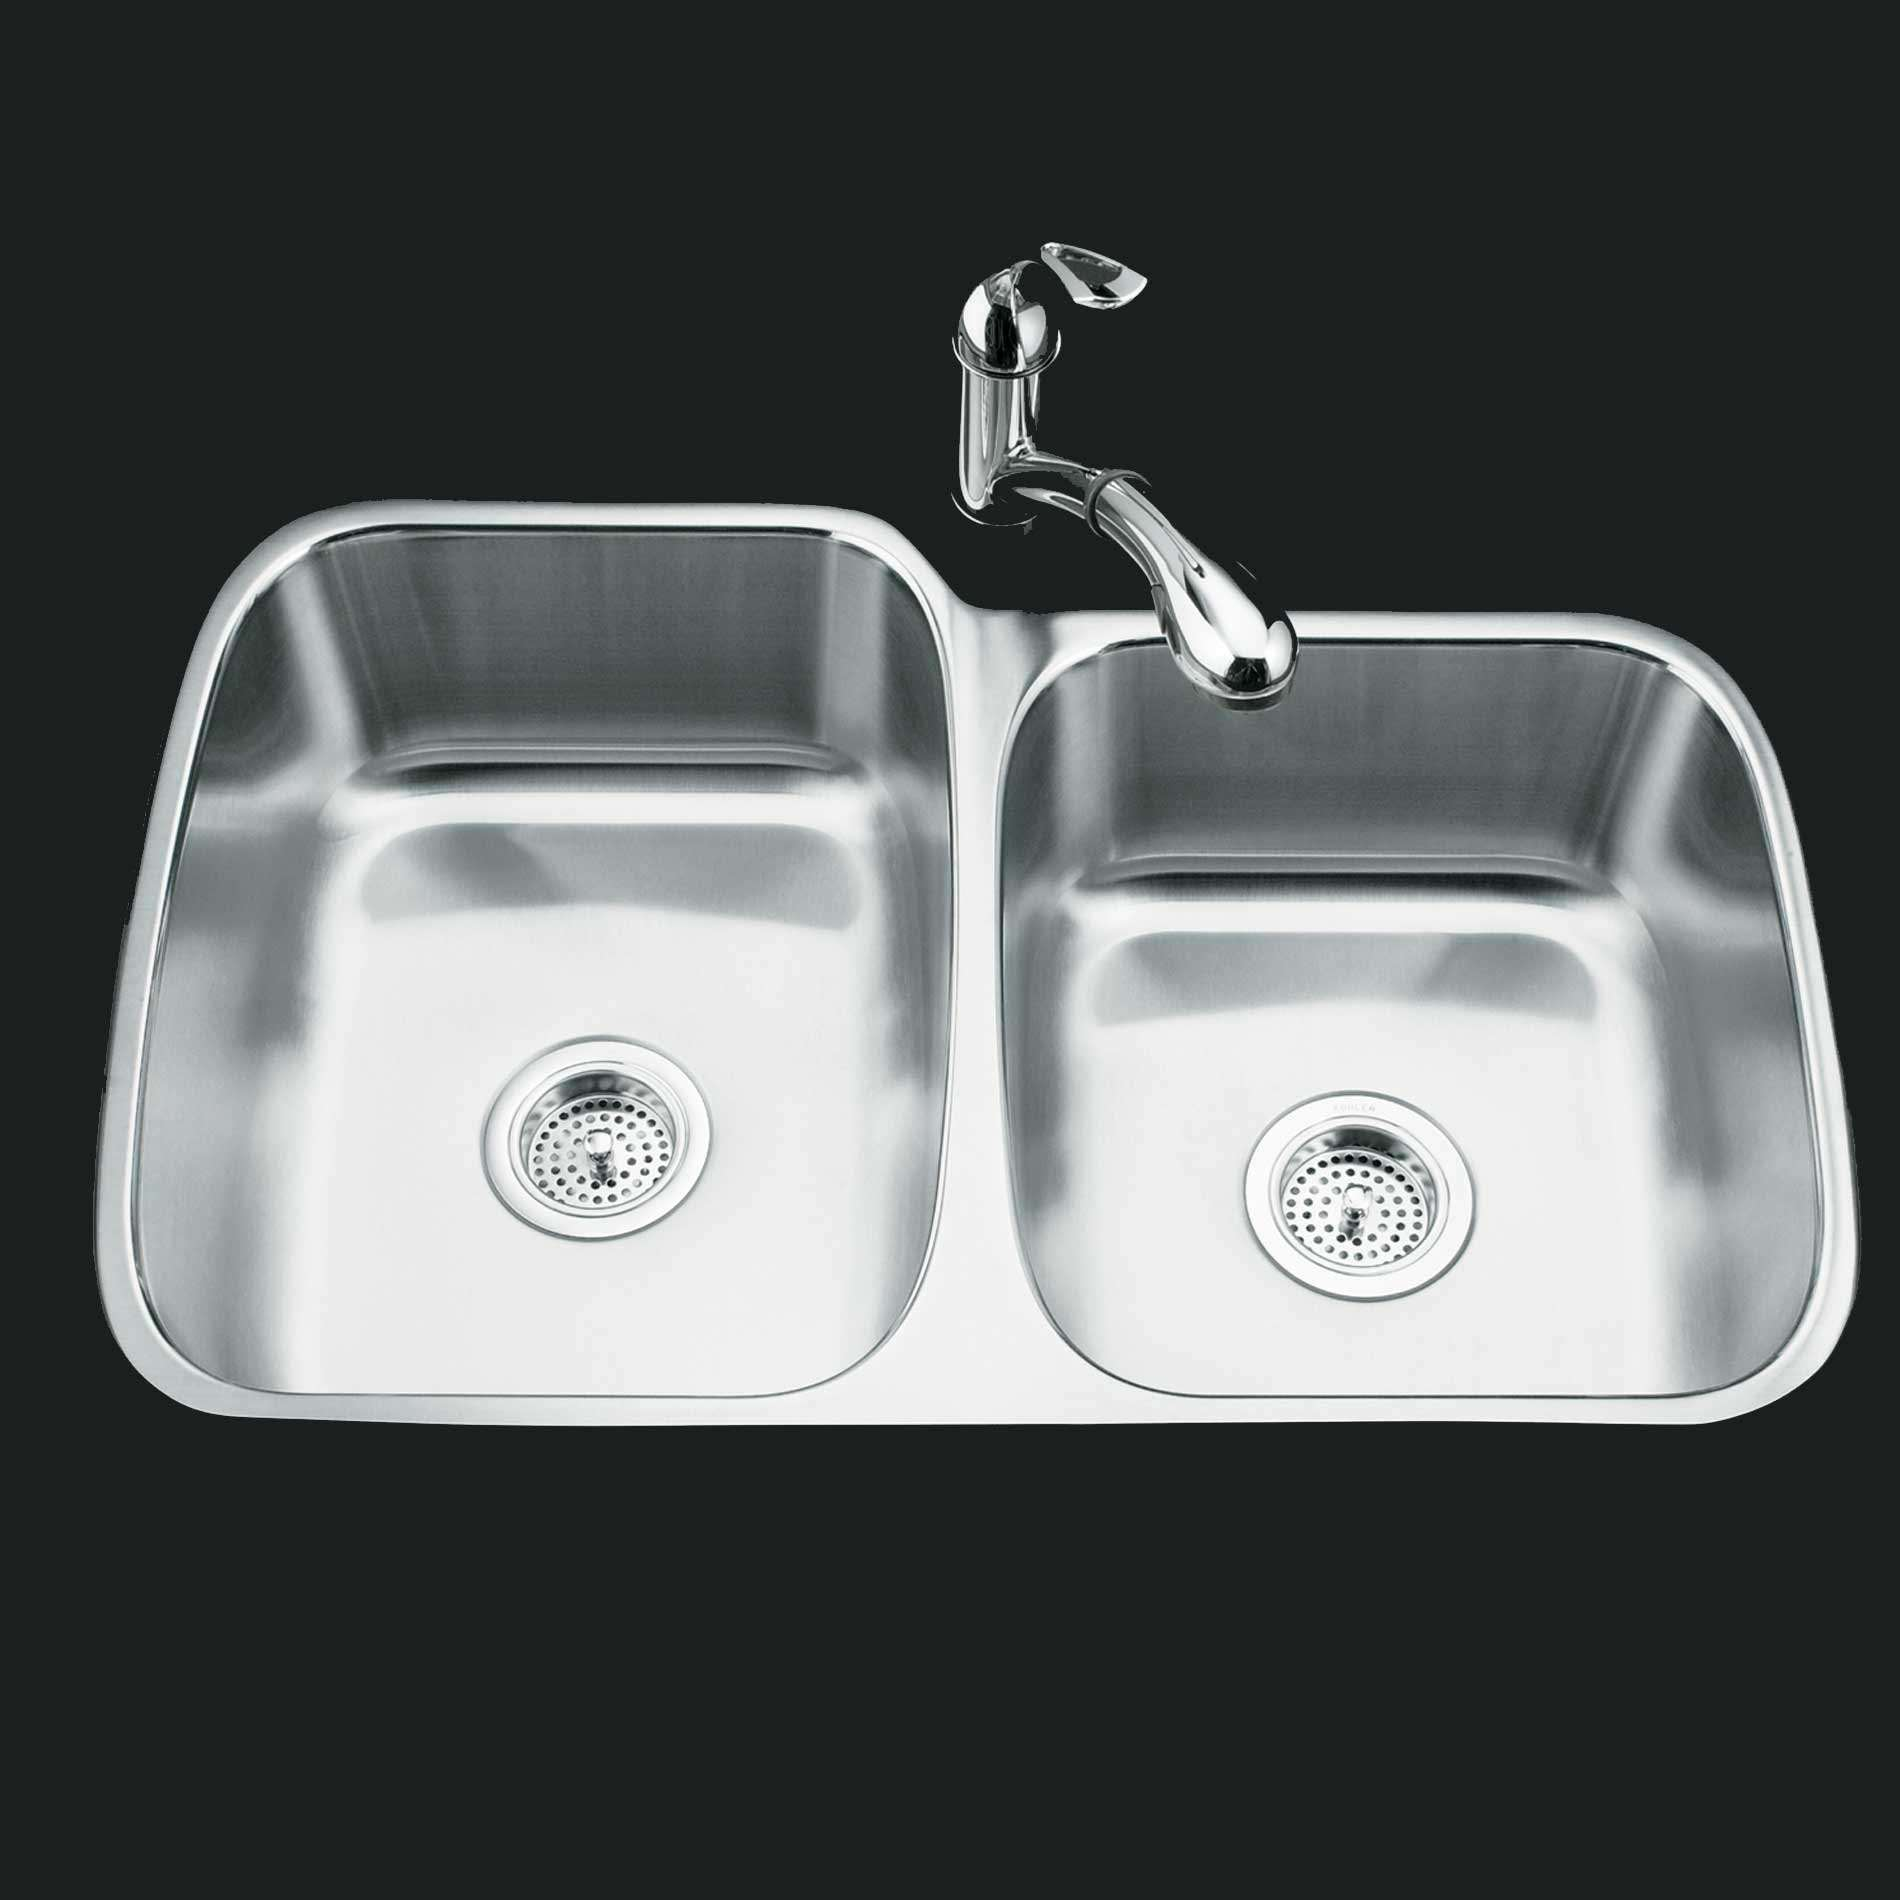 Picture of Icerock 3356 Stainless Steel Sink